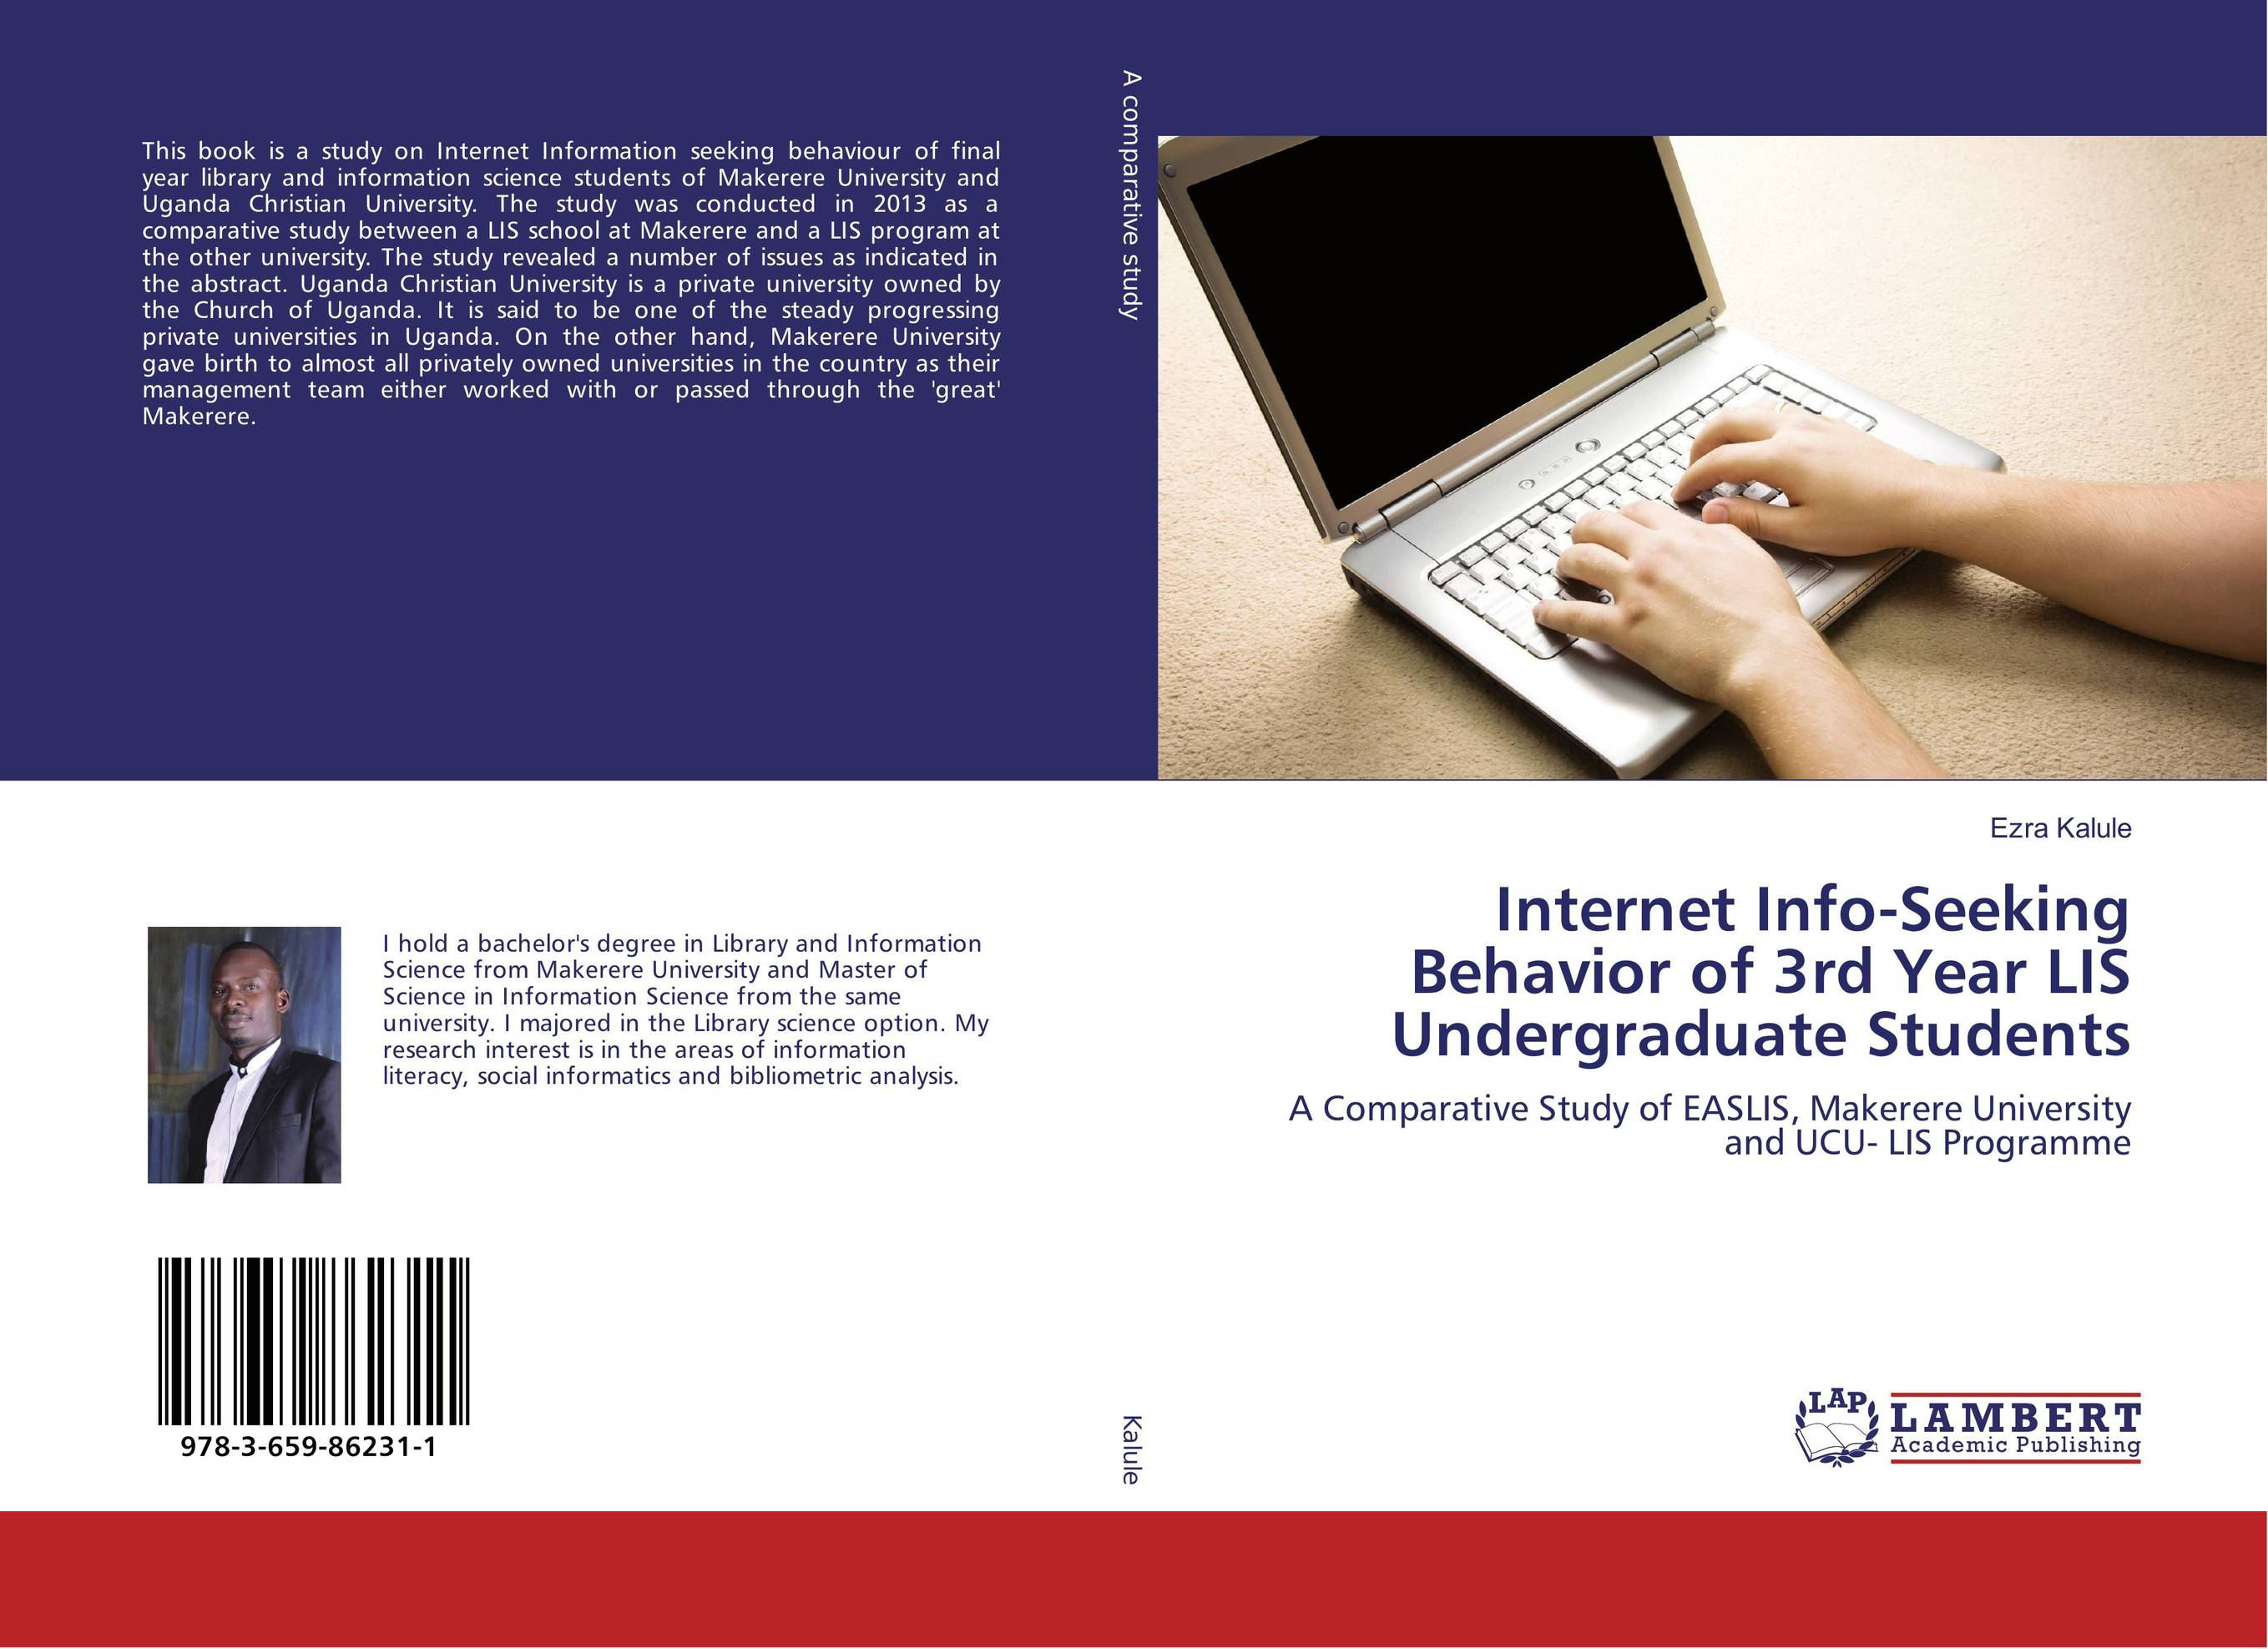 Internet Info-Seeking Behavior of 3rd Year LIS Undergraduate Students